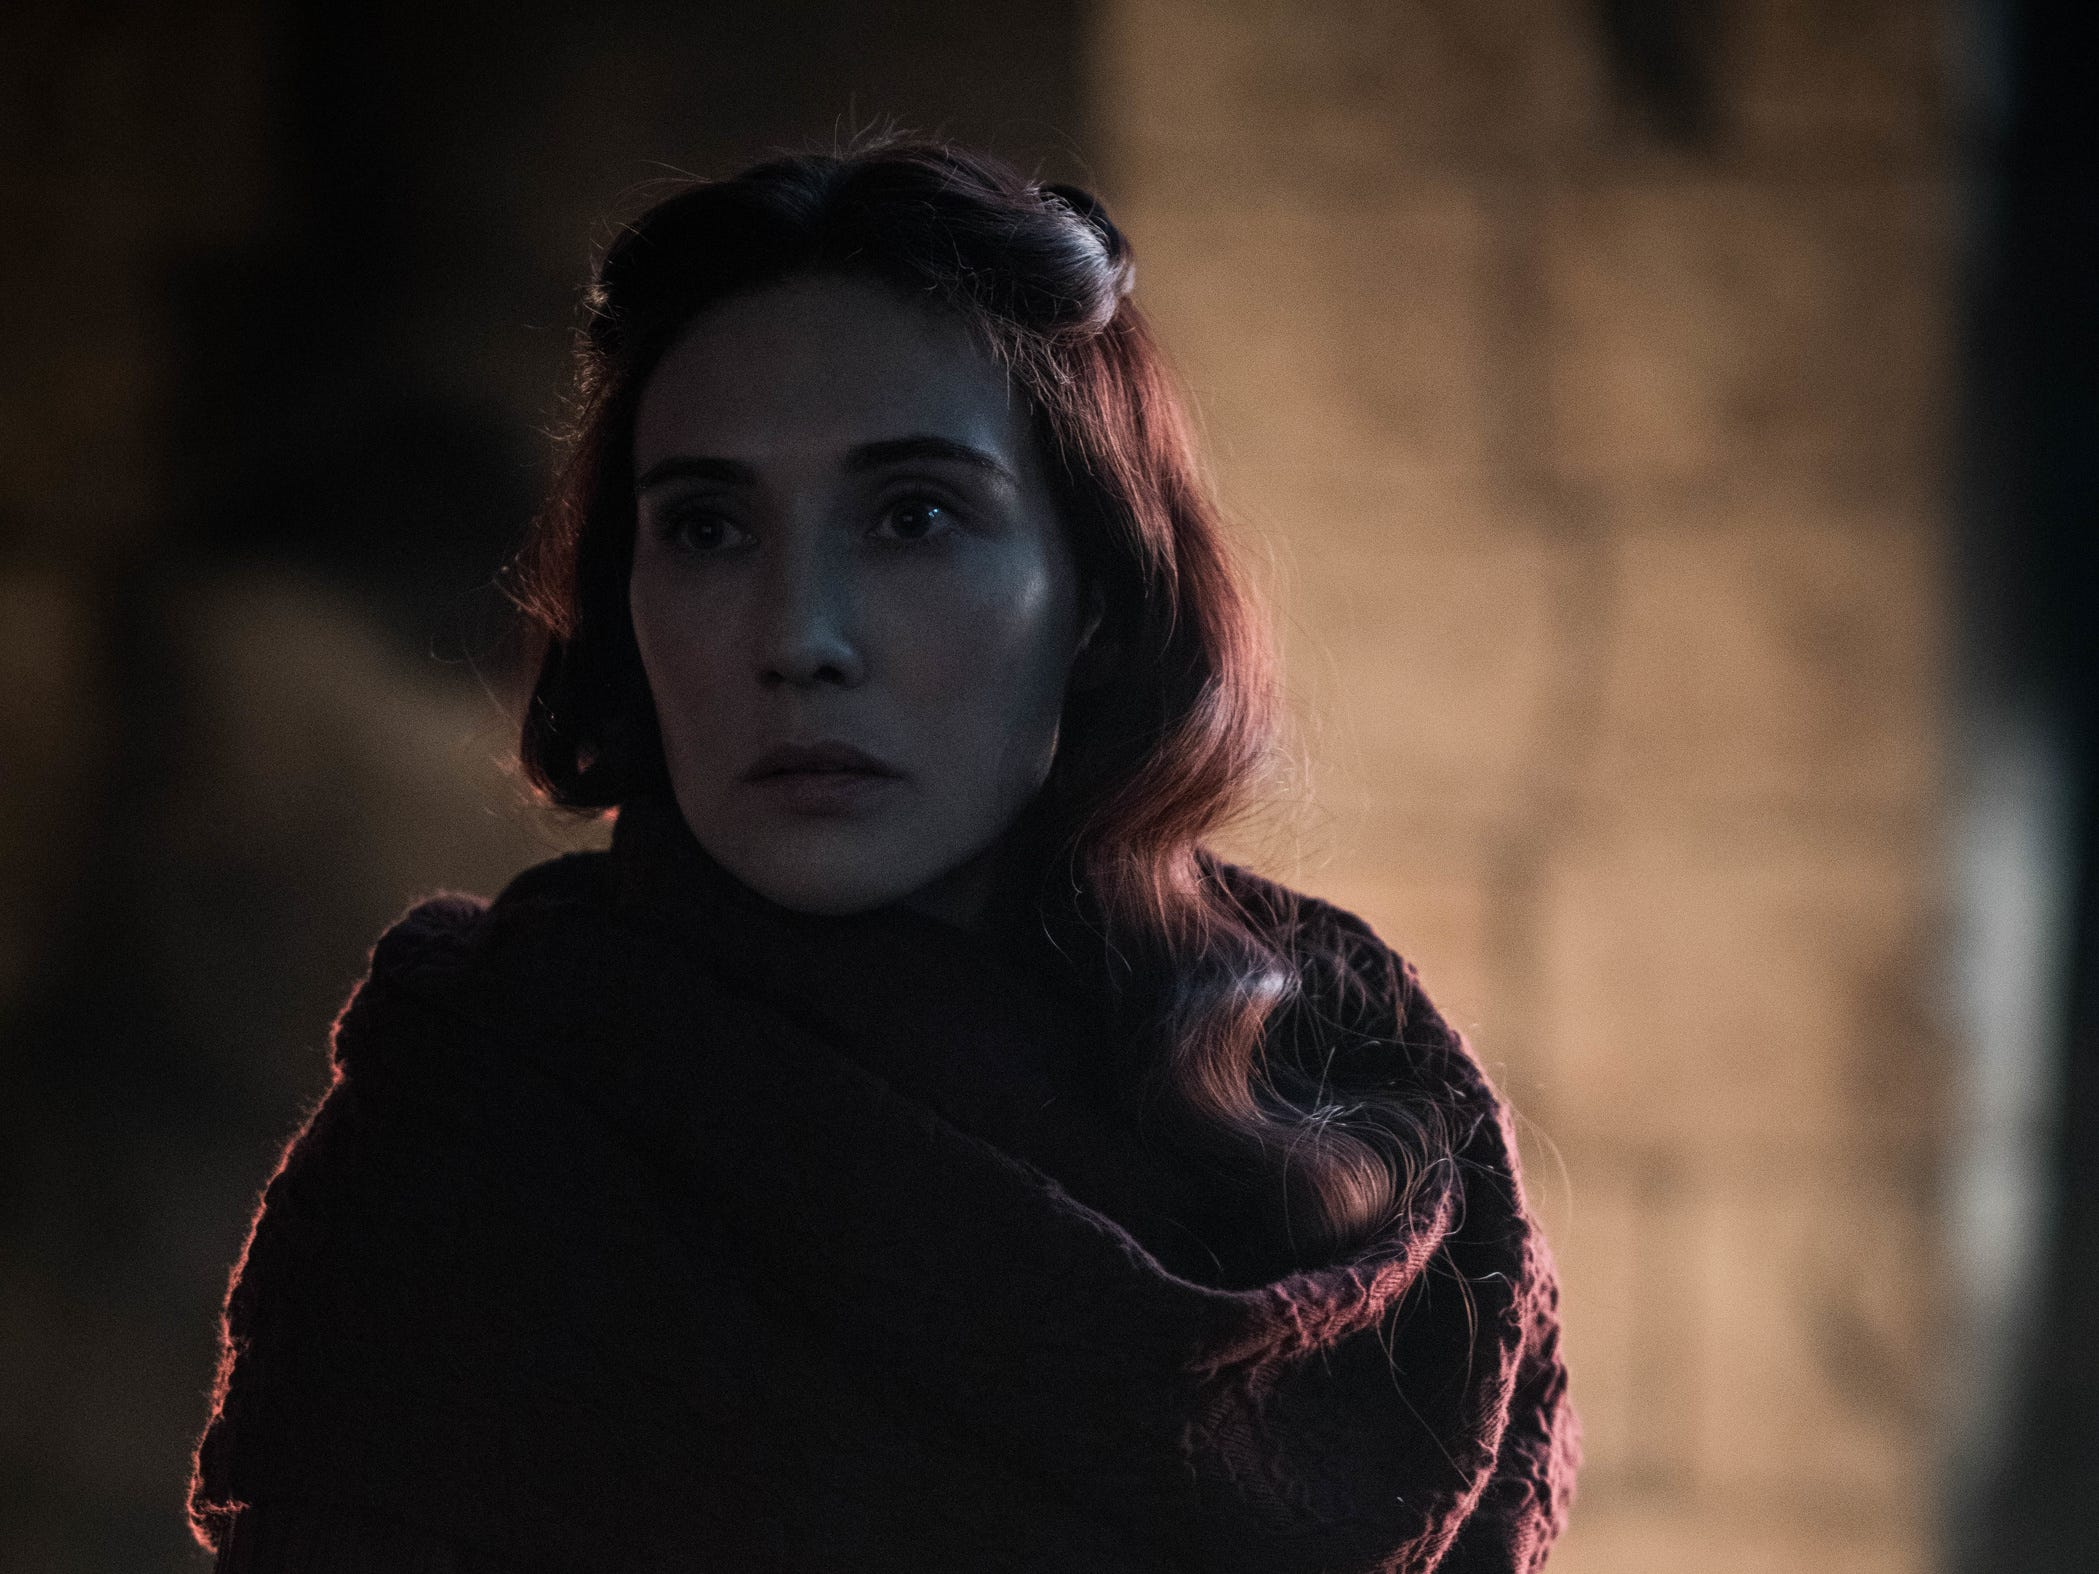 Red priestess Melisandre (Carice van Houten) made a dramatic and fateful return on Sunday's episode of 'Game of Thrones.'